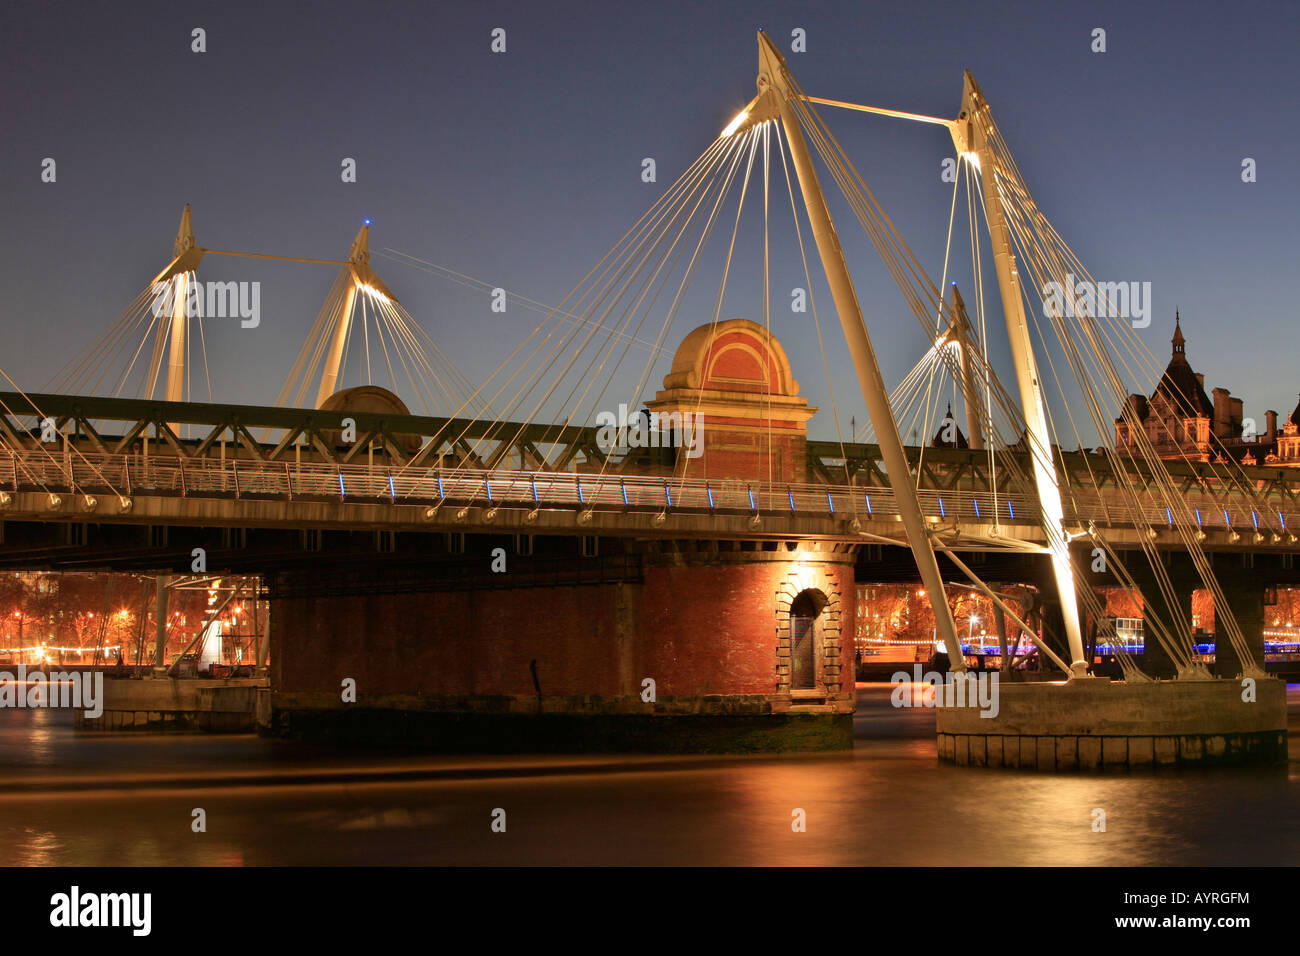 Hungerford Bridge flanked by the two Golden Jubilee Bridges (footbridges), London, England, UK - Stock Image